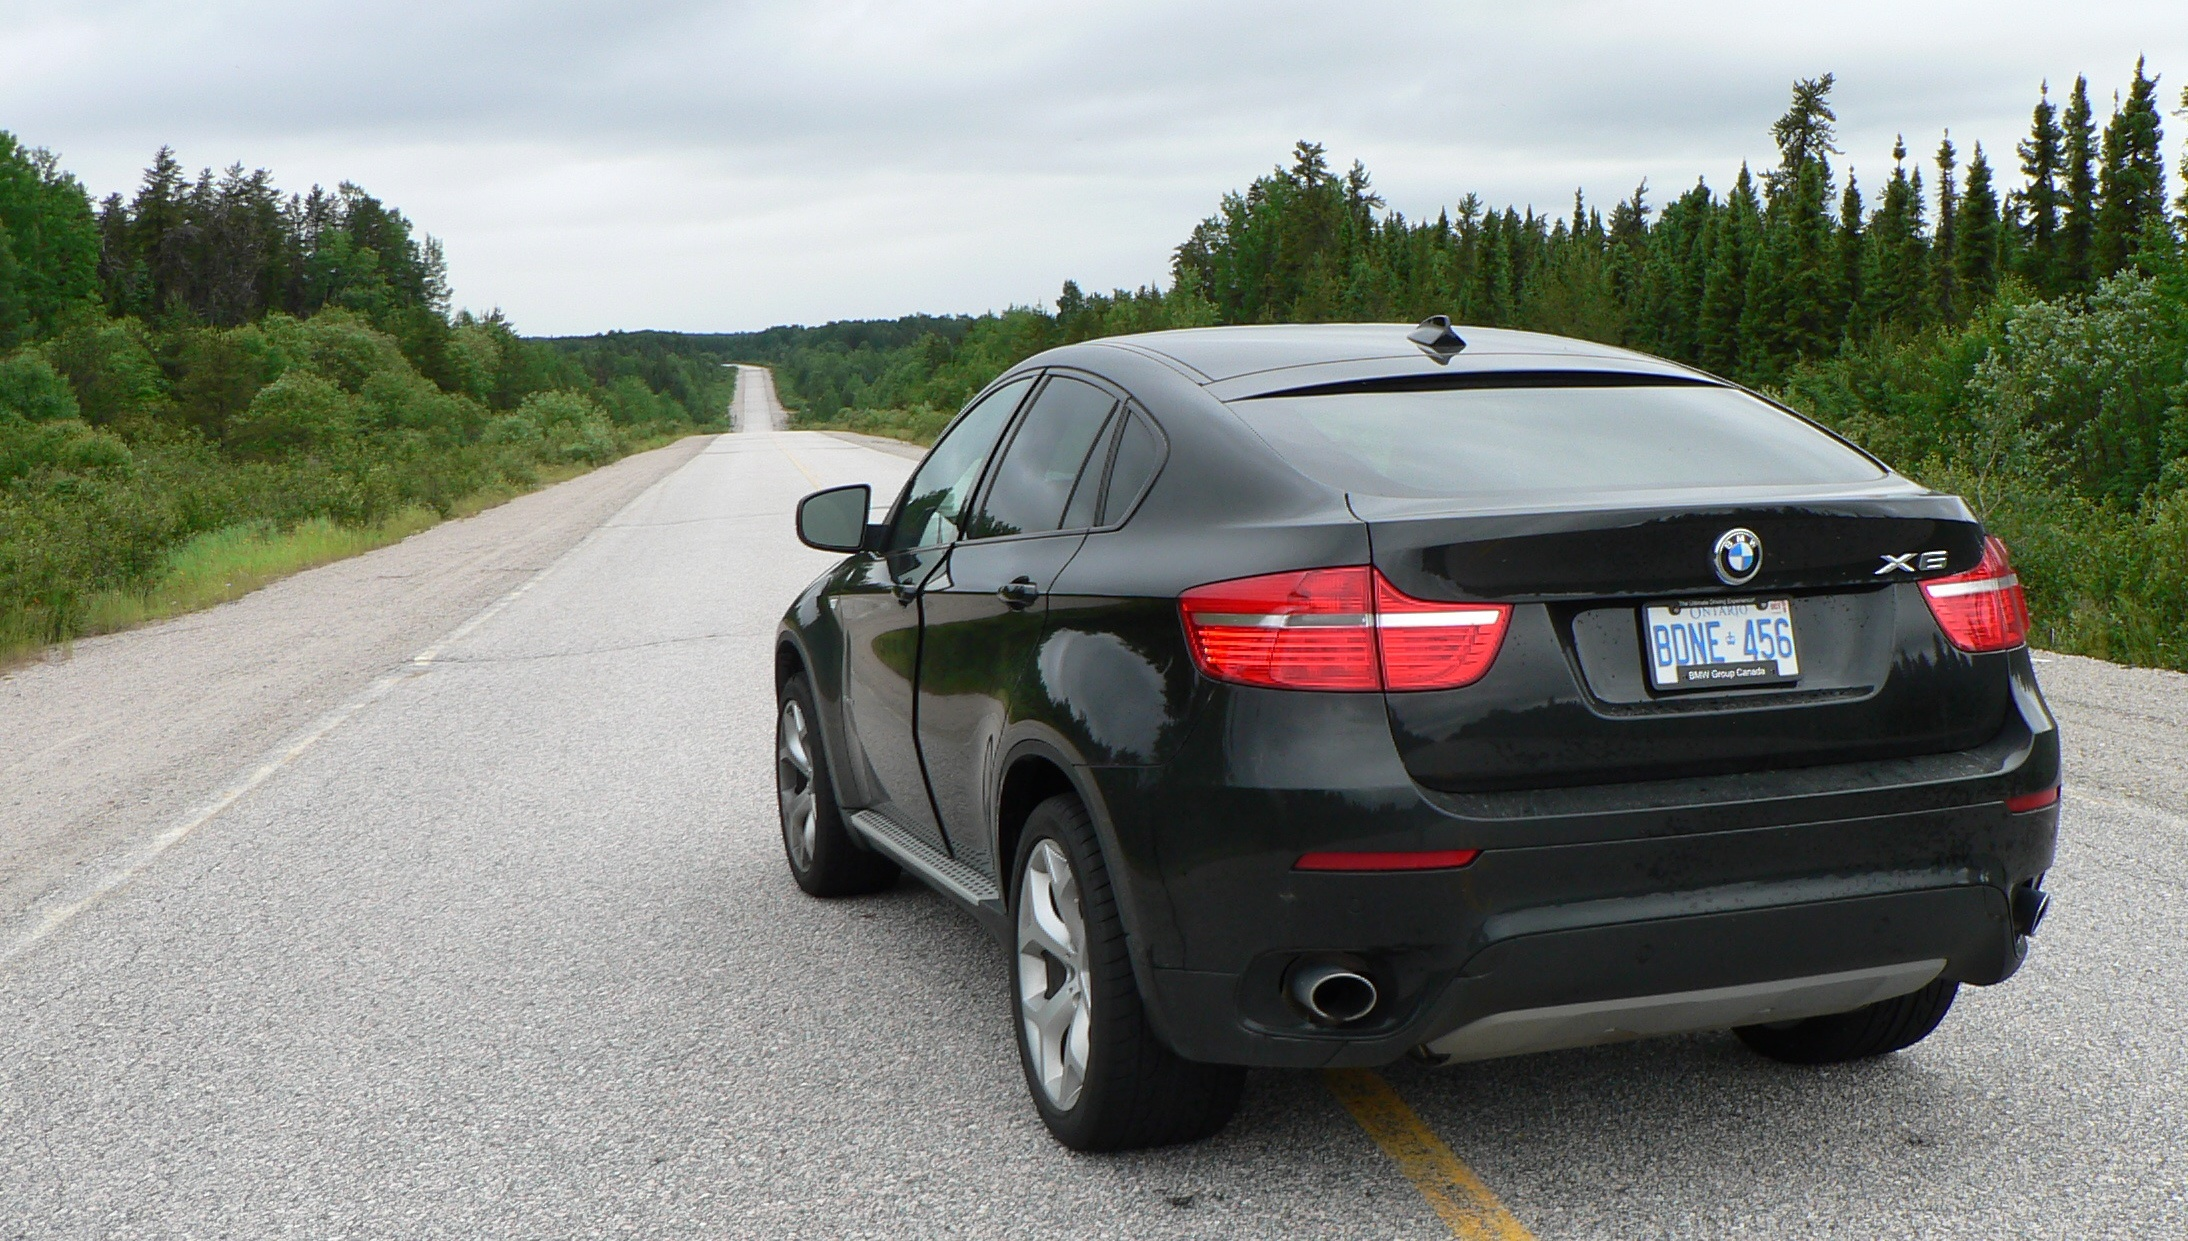 Canada Goose toronto sale discounts - Feature: North to James Bay in a BMW X6 xDrive 35i : John ...